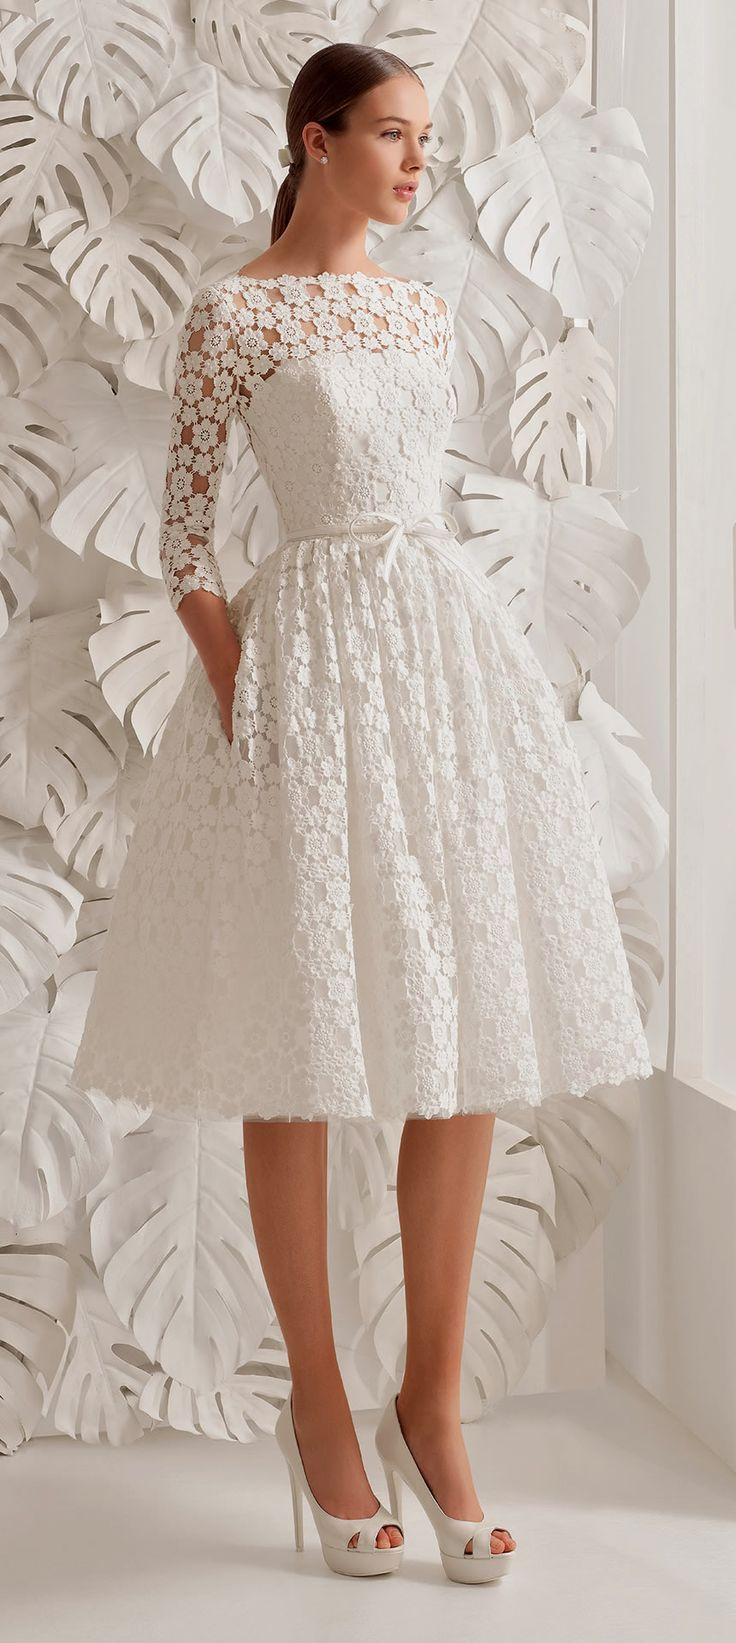 40 Prettiest Rehearsal Dinner Short Wedding Dresses | Short lace ...